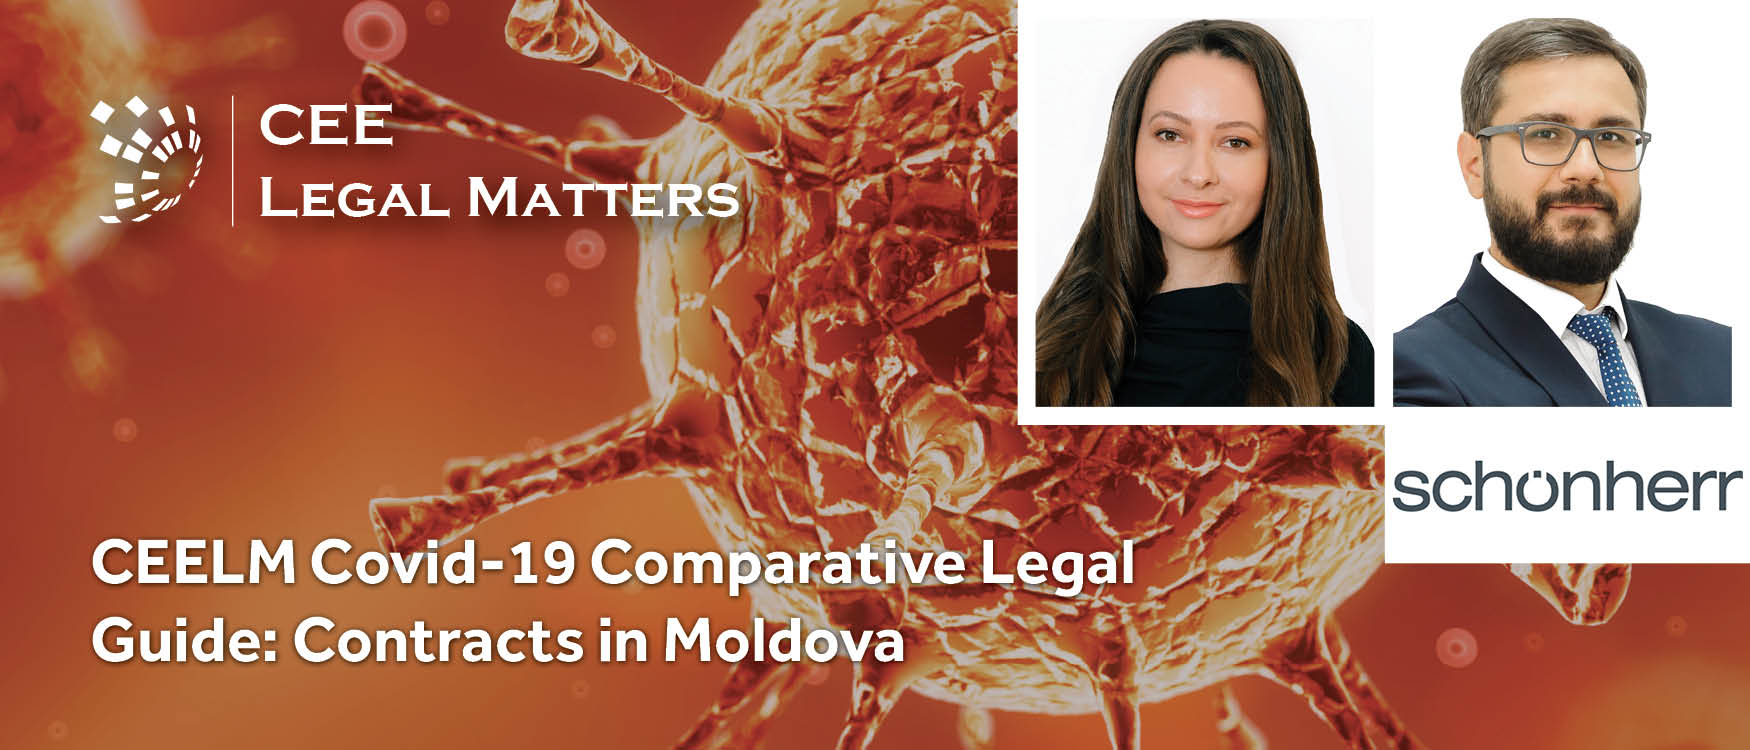 CEELM Covid-19 Comparative Legal Guide: Contracts in Moldova